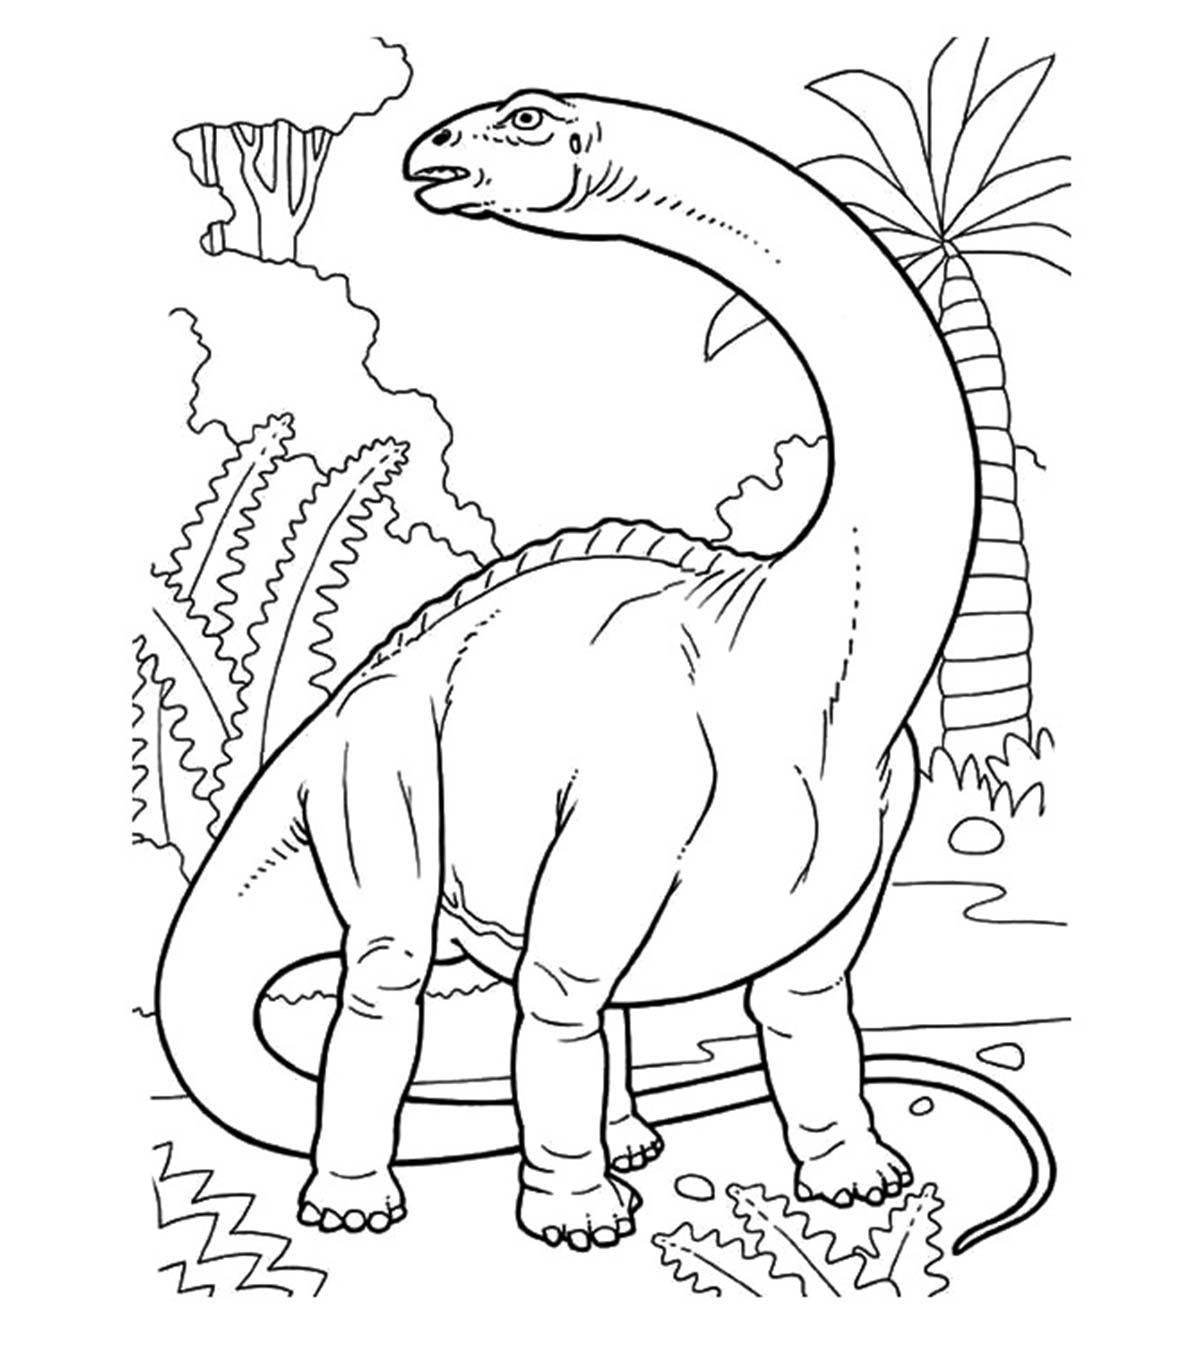 Huge Dinosaur Colouring Image